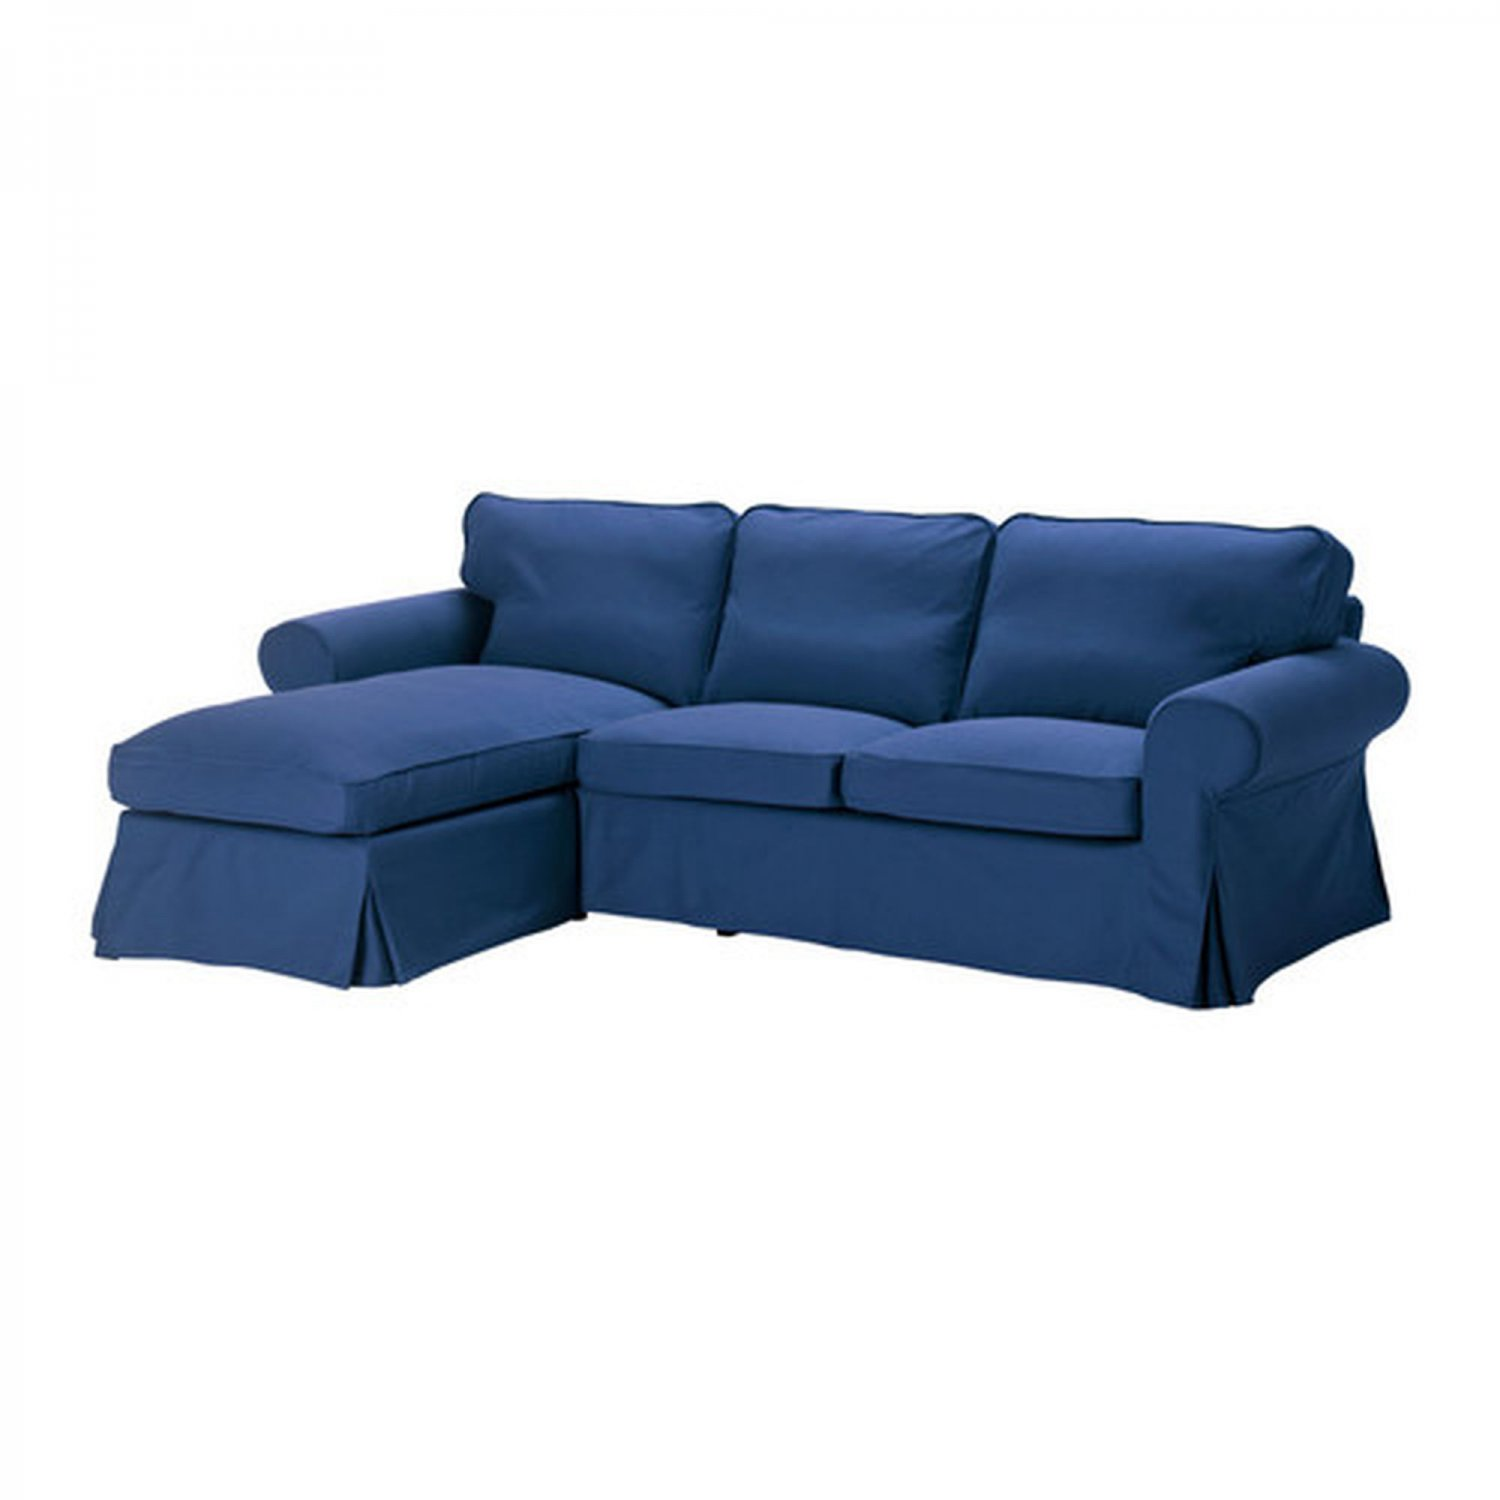 ikea ektorp loveseat with chaise lounge cover slipcover